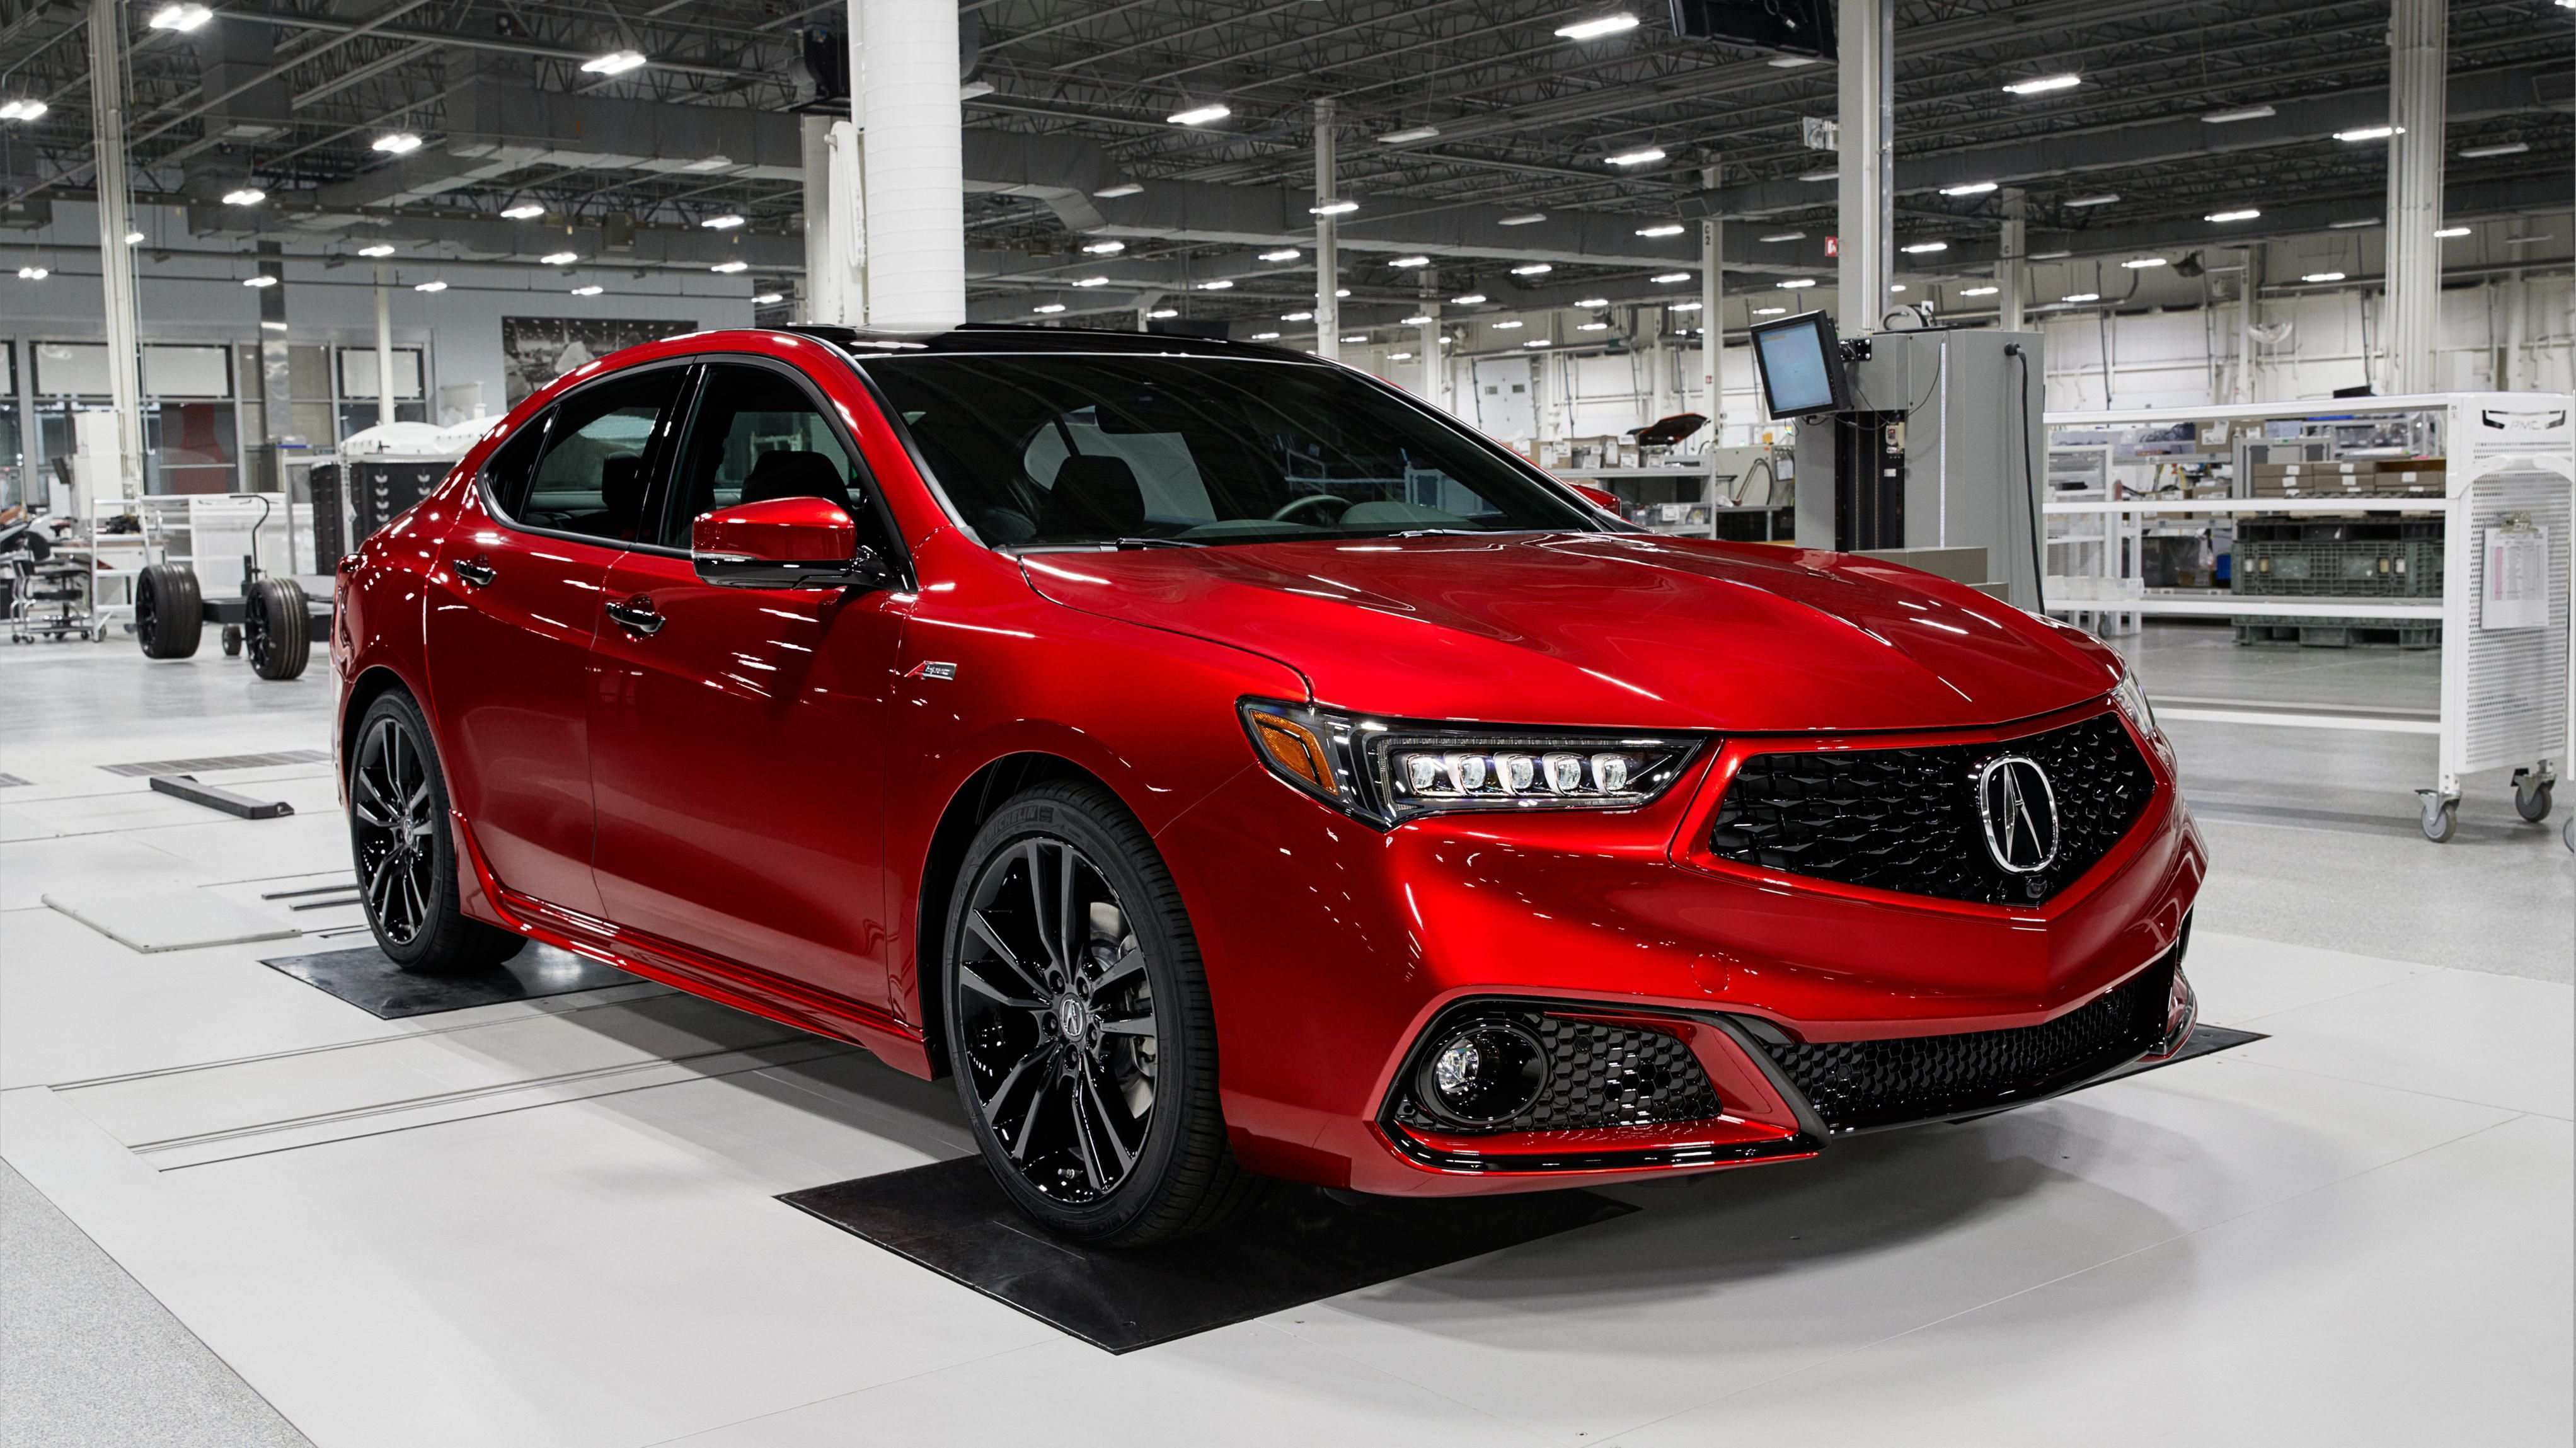 22 All New When Will 2020 Acura Tlx Be Released Pictures